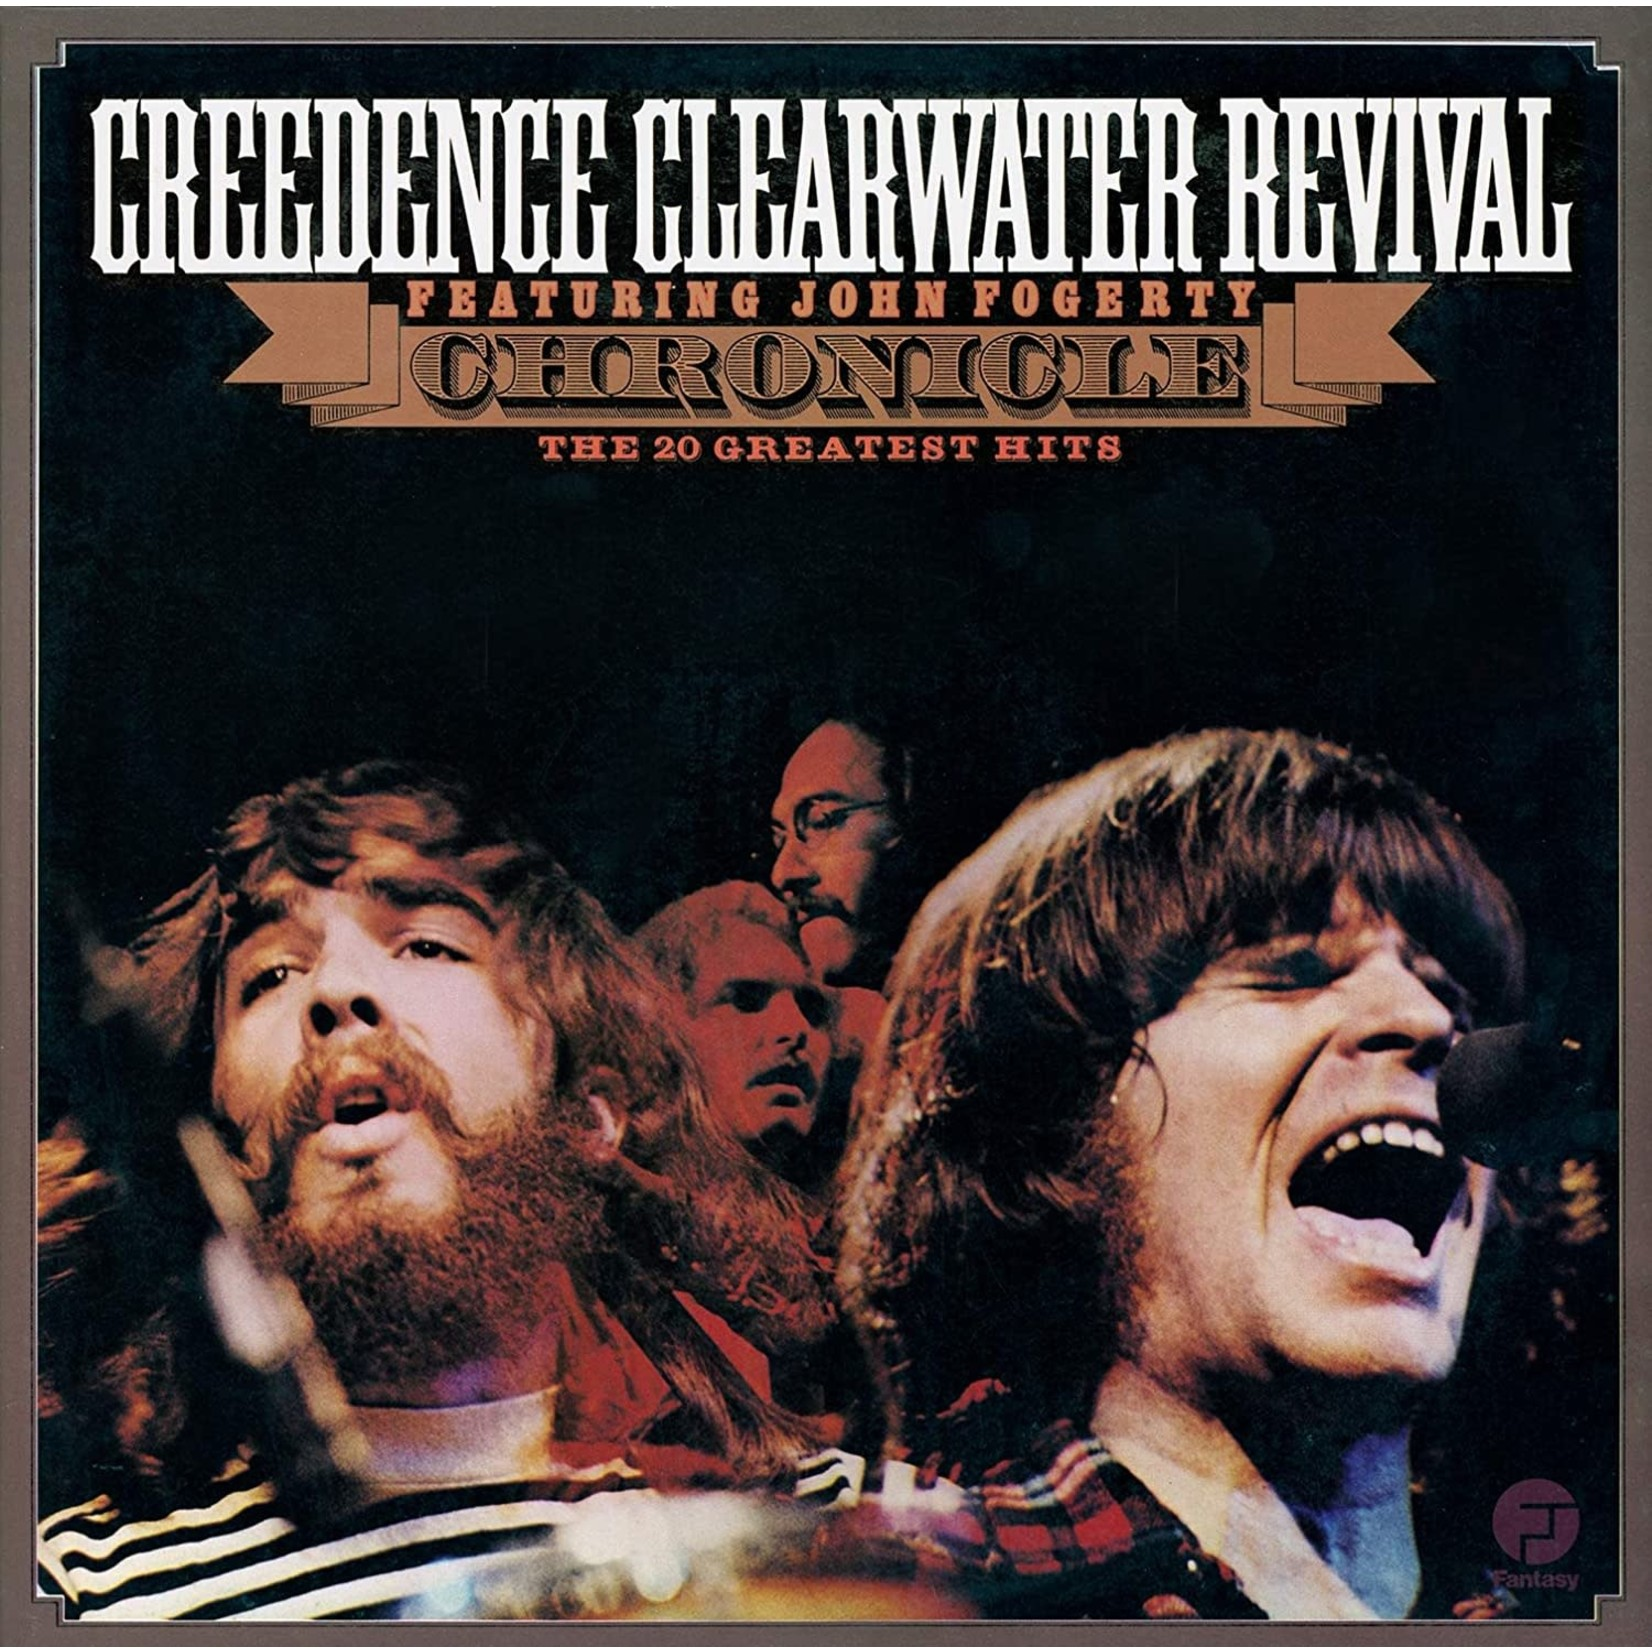 [Vintage] Creedence Clearwater Revival: Chronicle